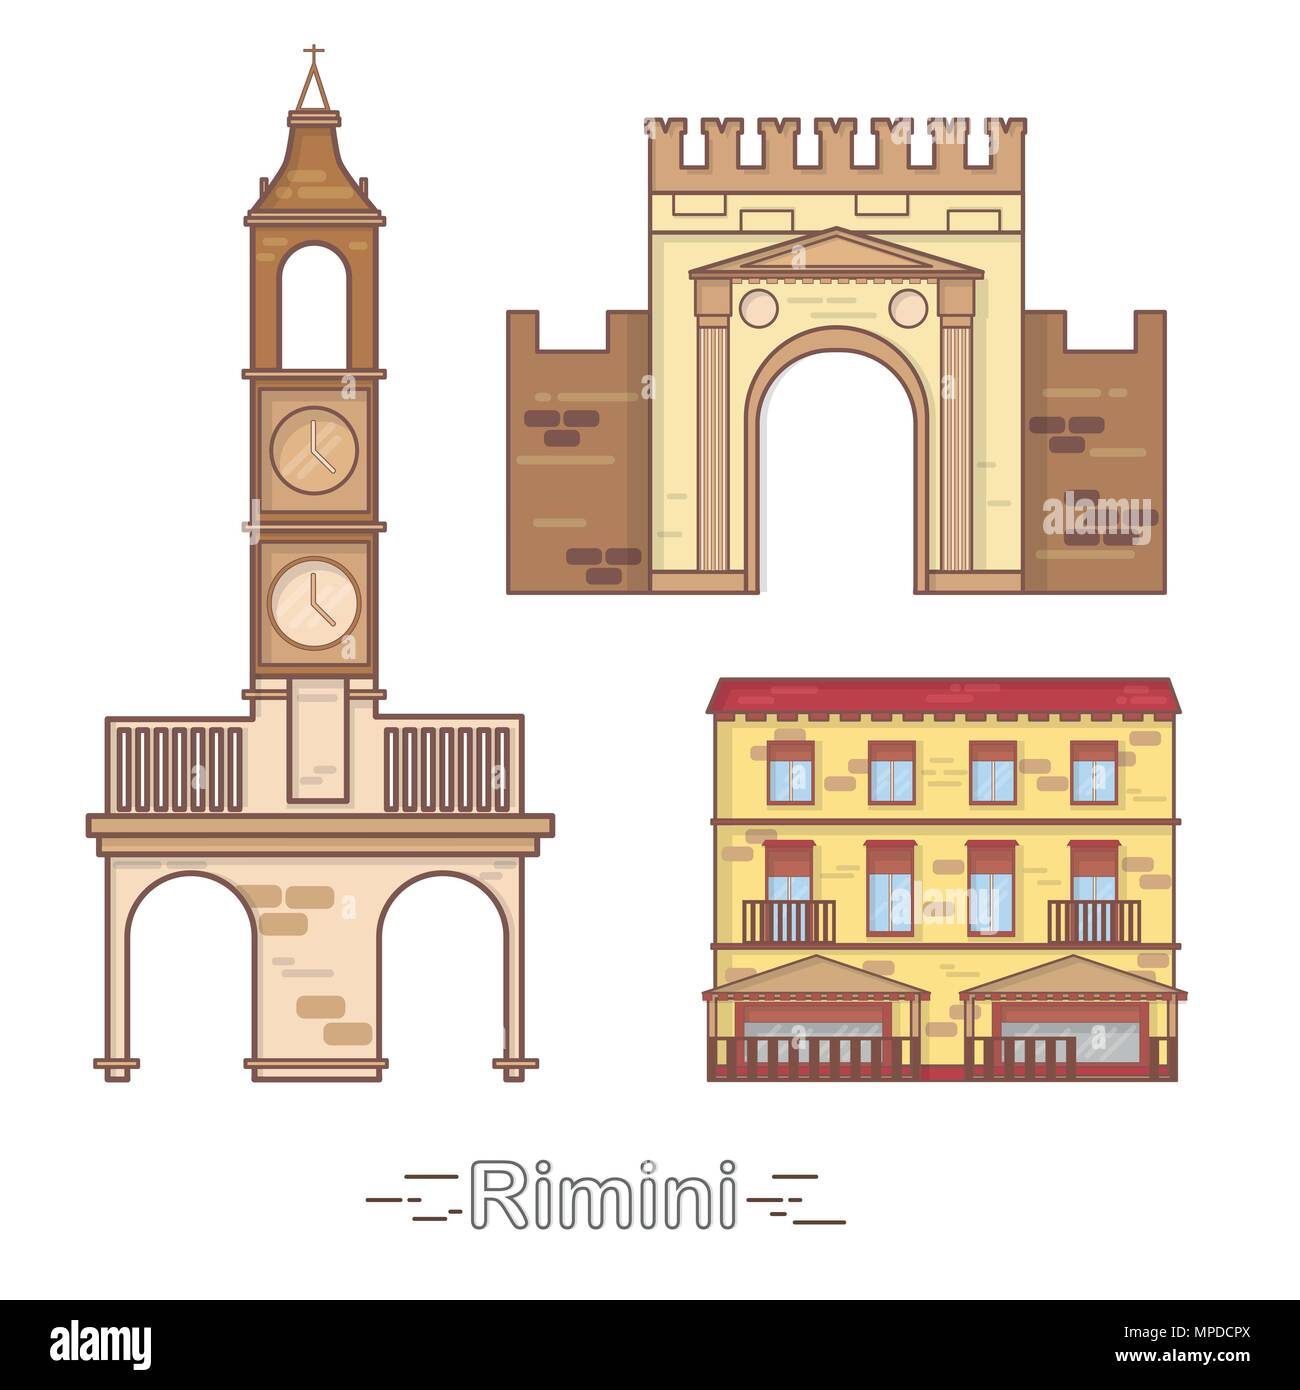 Italy, Rimini outline city buildings, linear illustration, travel landmark - Stock Image